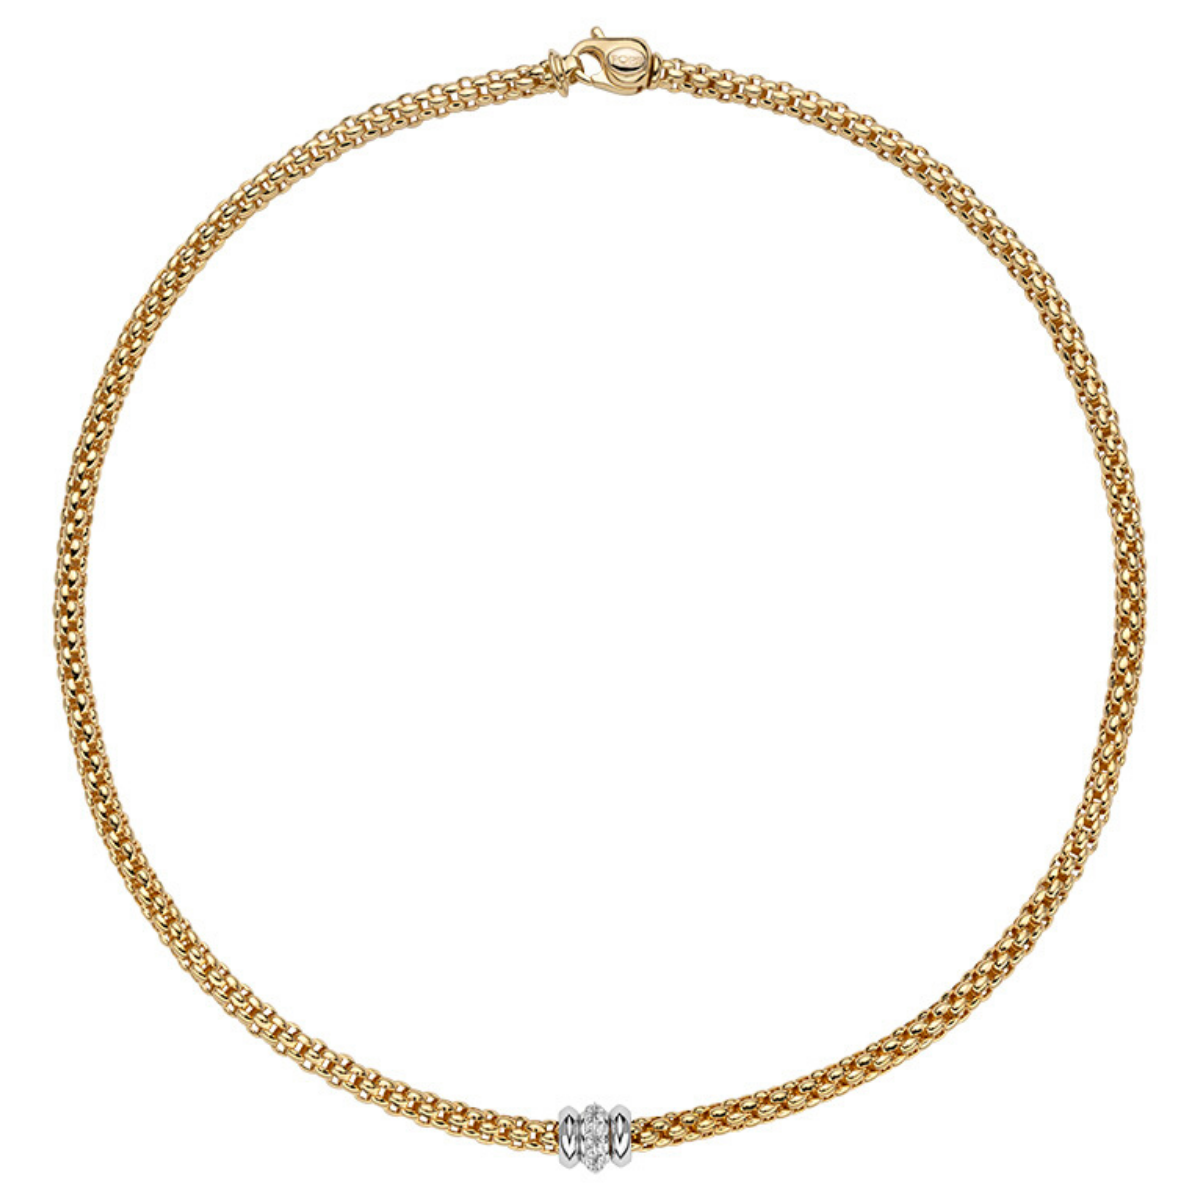 FOPE Collier in Gelbgold